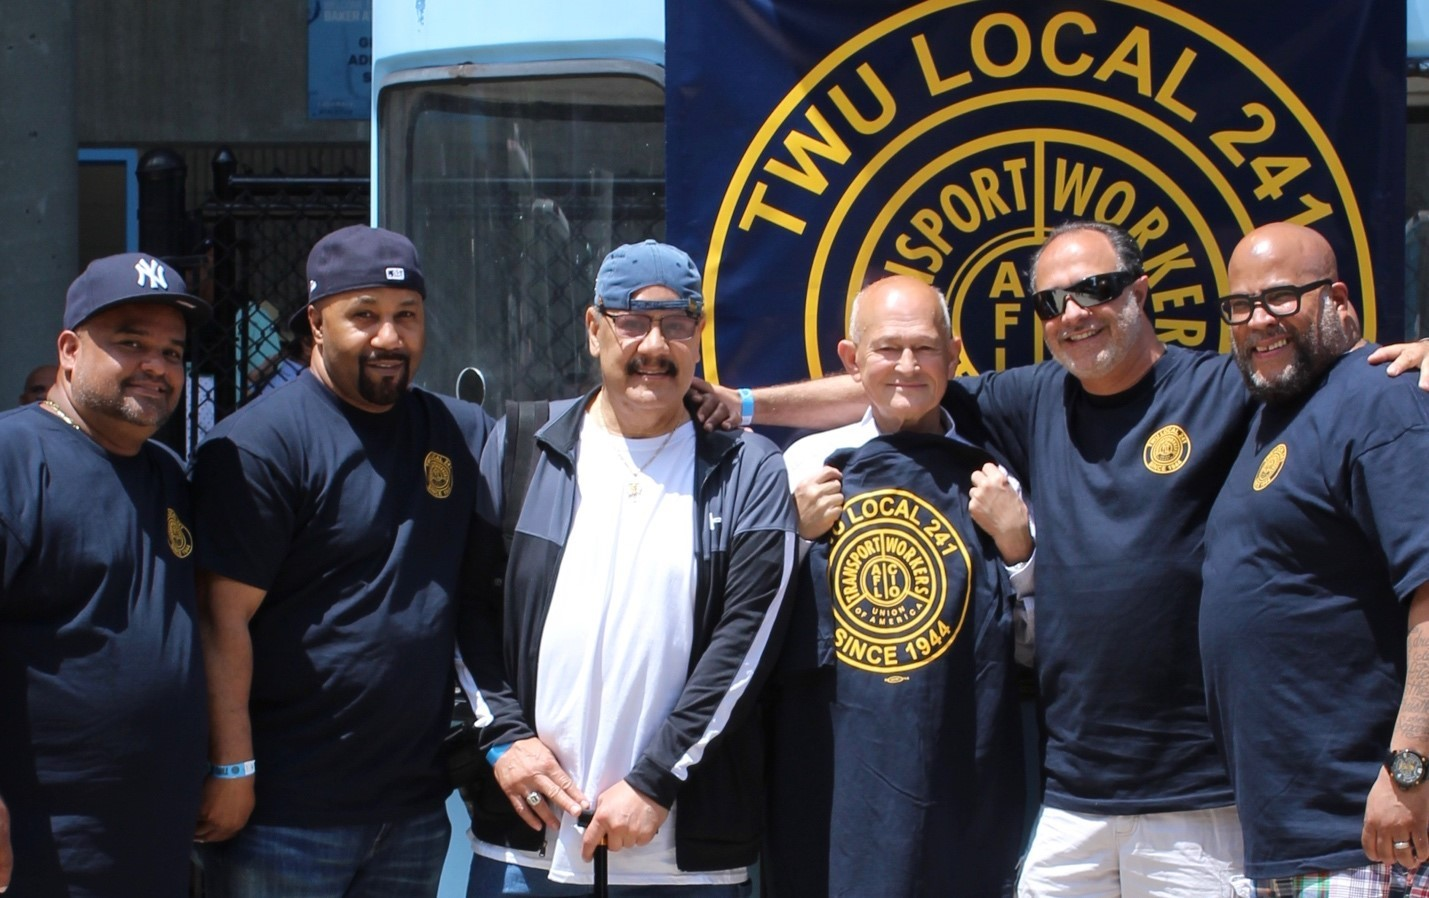 TWU Local 241 leadership and long-term members share a moment at the 75th Anniversary celebration June 22 at Baker Athletics Complex. From left: Alex Molina, President; Scotty Morris, Vice President; Cedilio Maldonado, CUIMC Mechanic A, who started at Columbia in December 1974; Tanveer Iqbal, Manhattanville Public Safety Officer, who started in November 1974, Dino Centrone, Treasurer; and Raymond Torres, Recording Secretary.